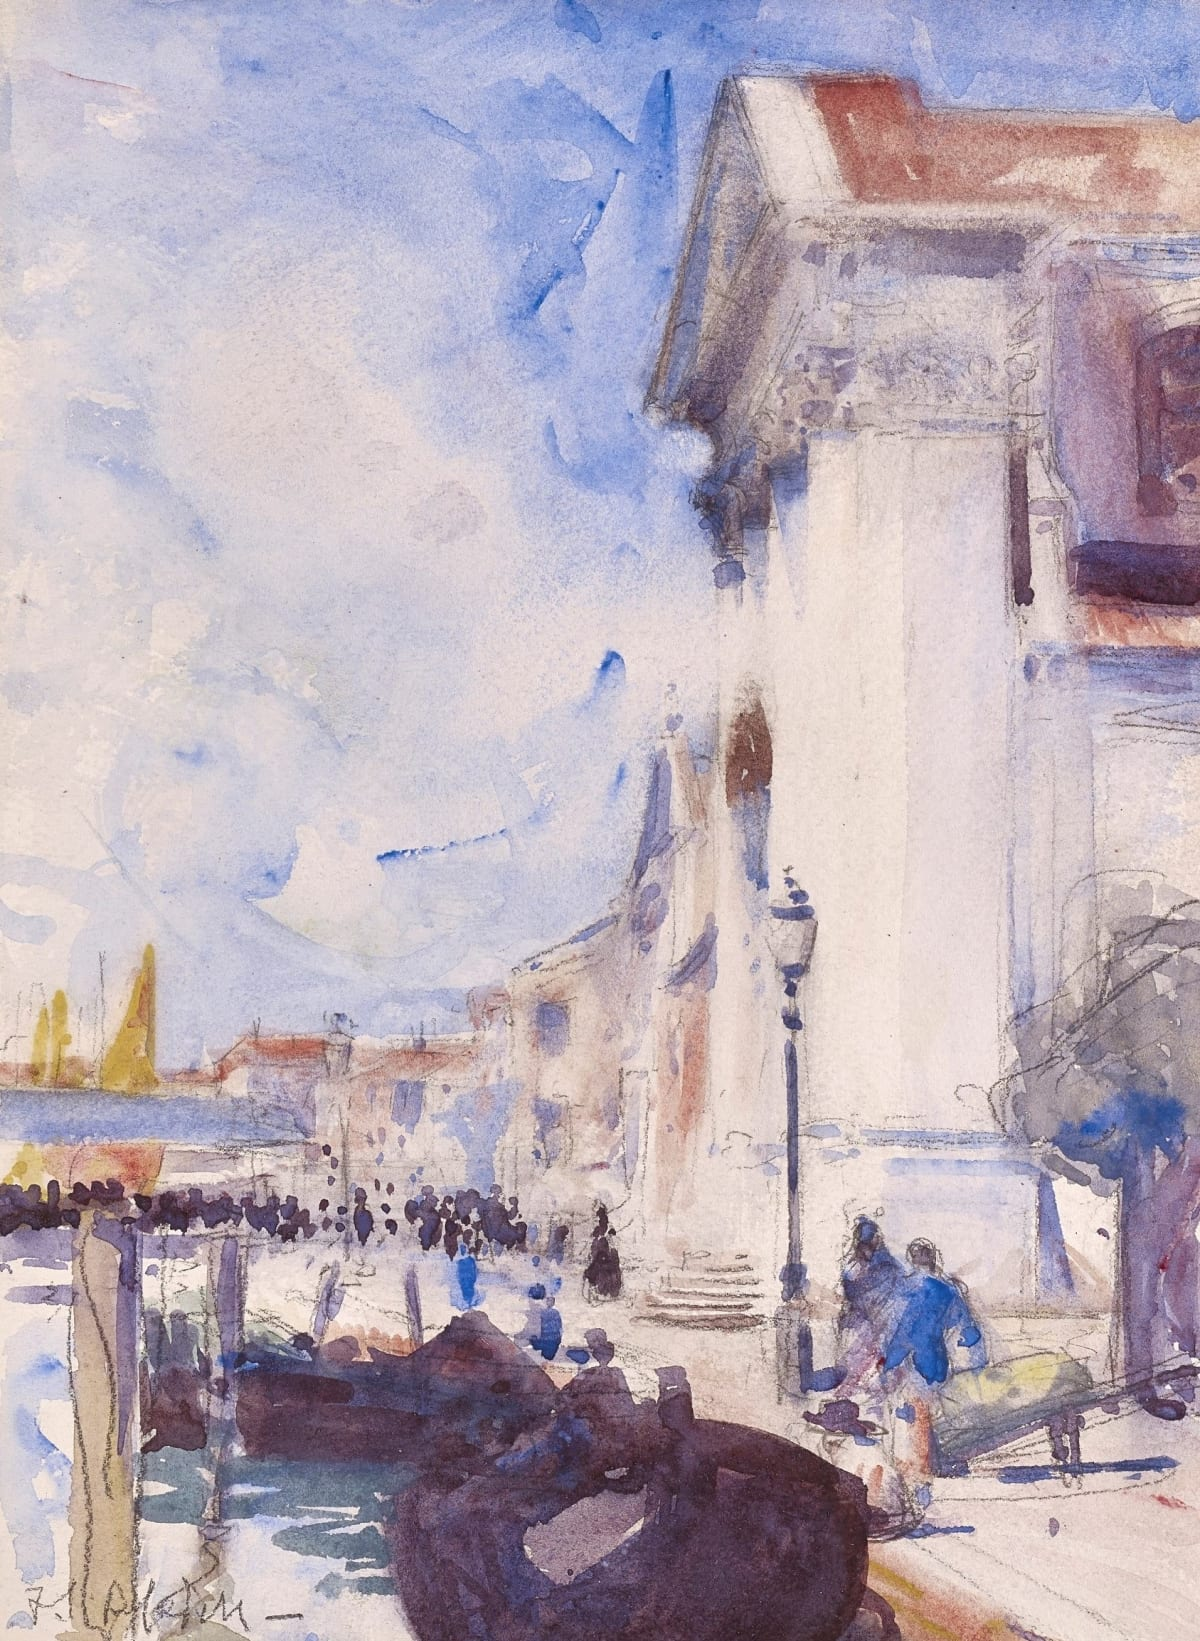 Francis Campbell Boileau Cadell The Jesuati, Venice, 1910 signed pencil and wash 12 x 9 inches